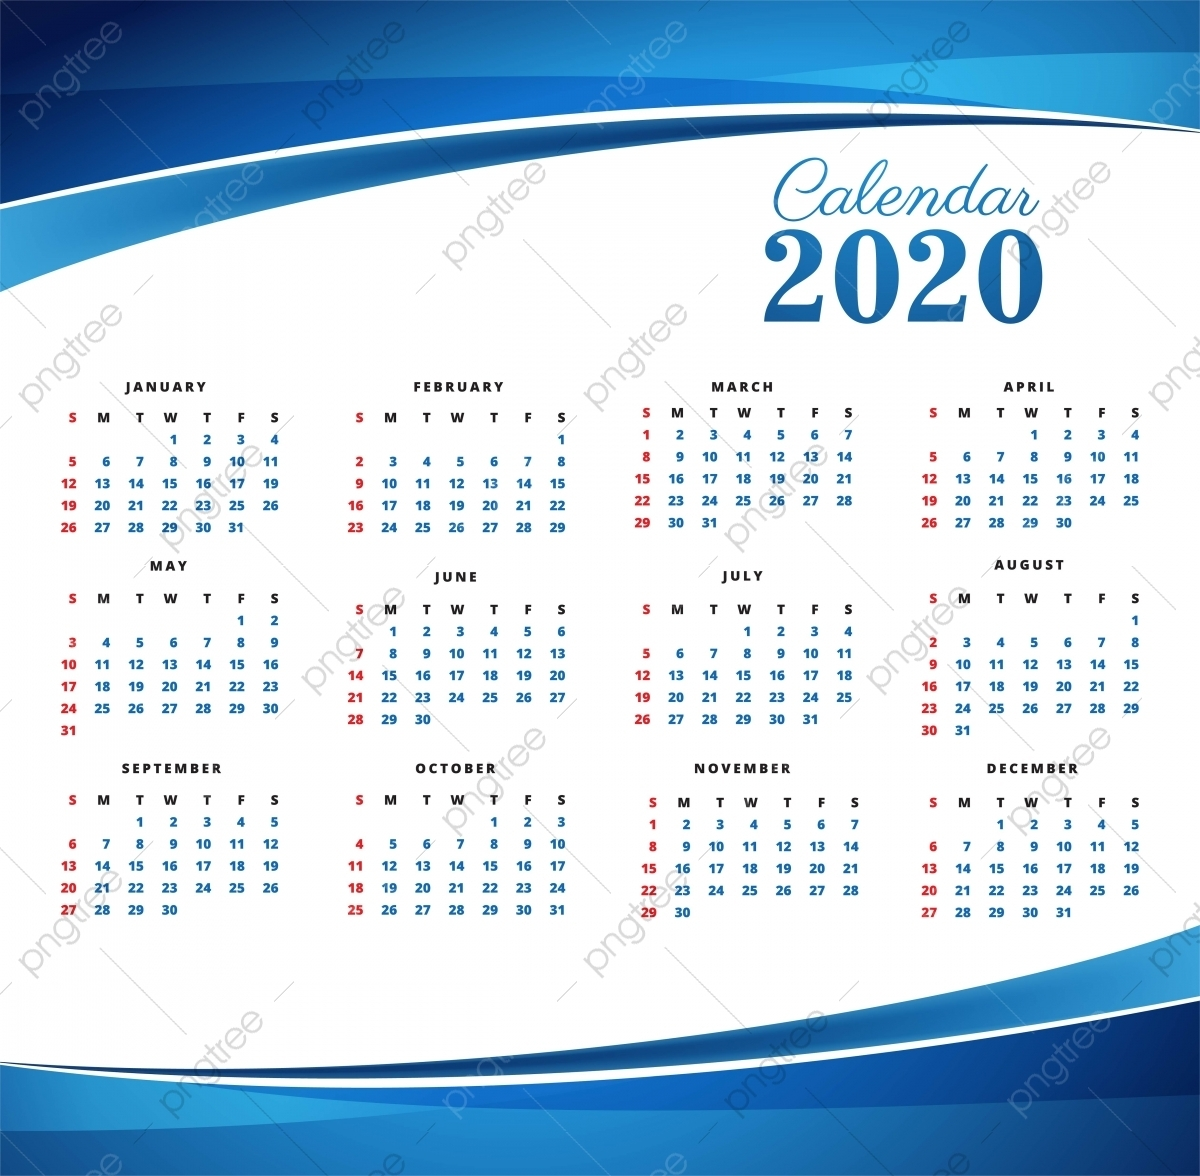 2020 Calendar Png Images | Vector And Psd Files | Free